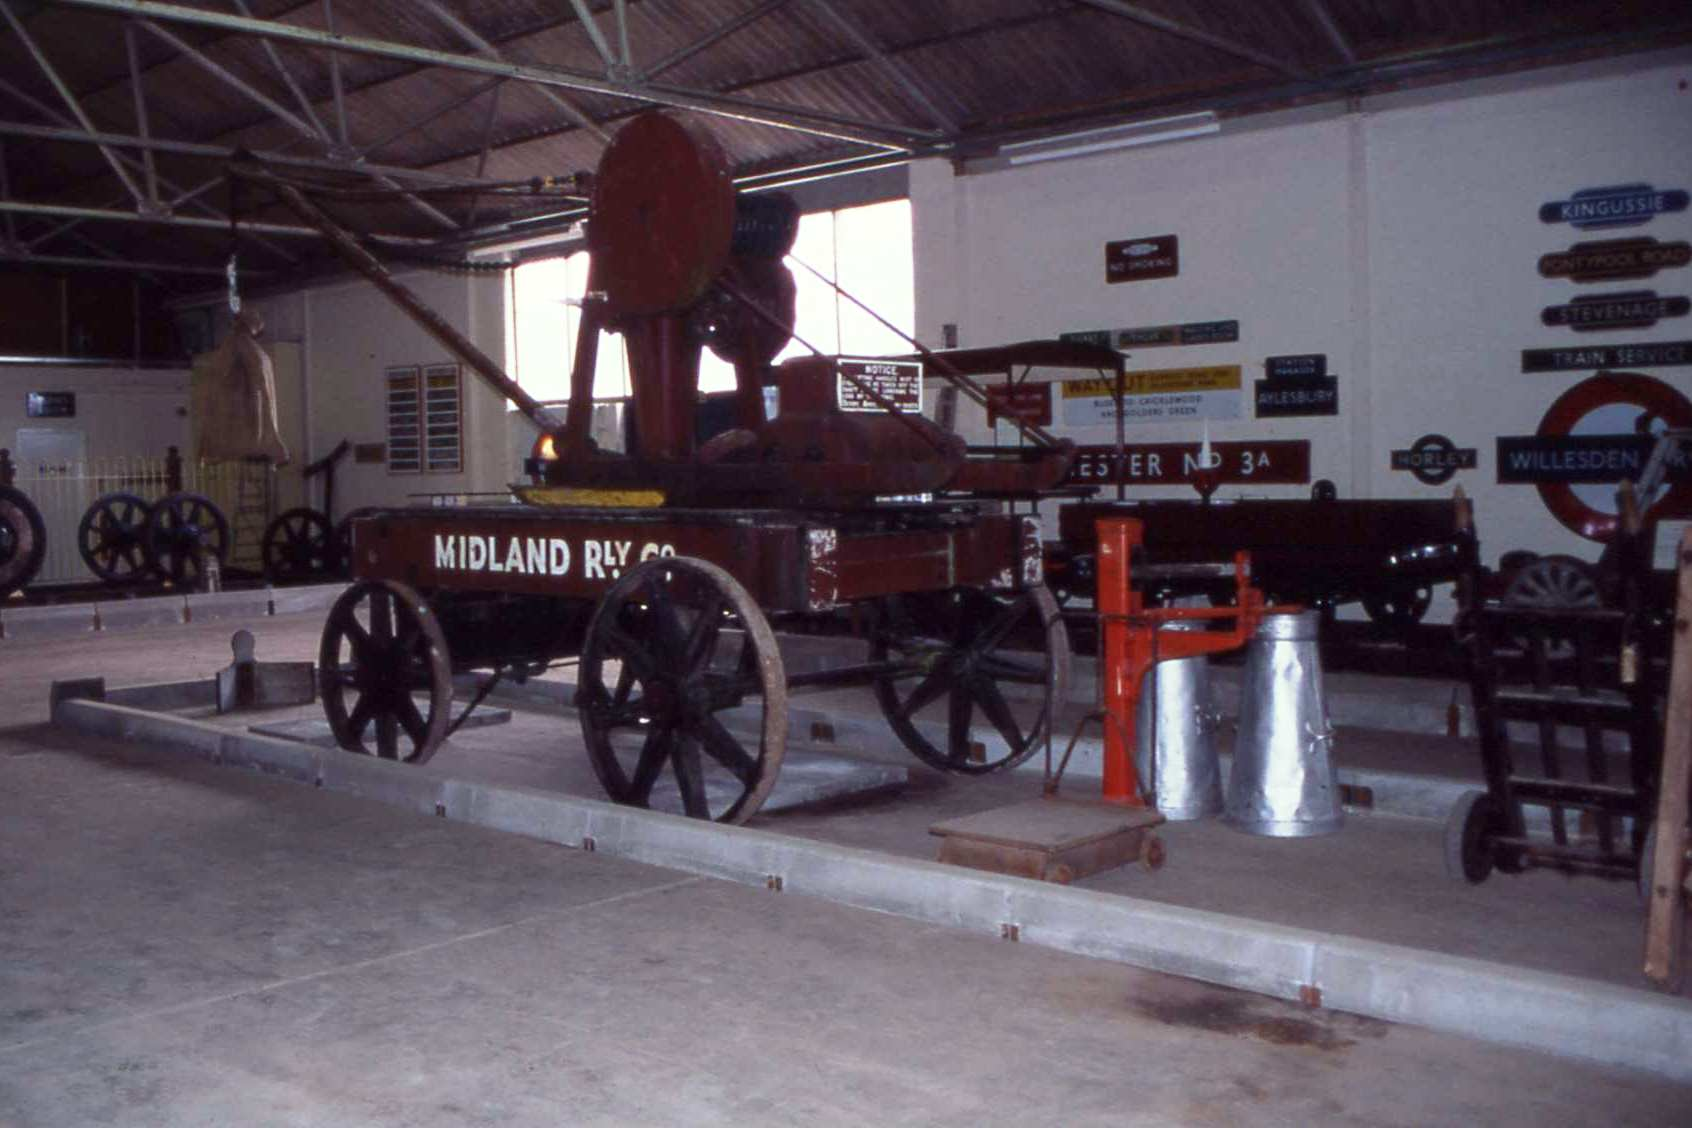 Midland Road Crane in Buffer Depot Museum